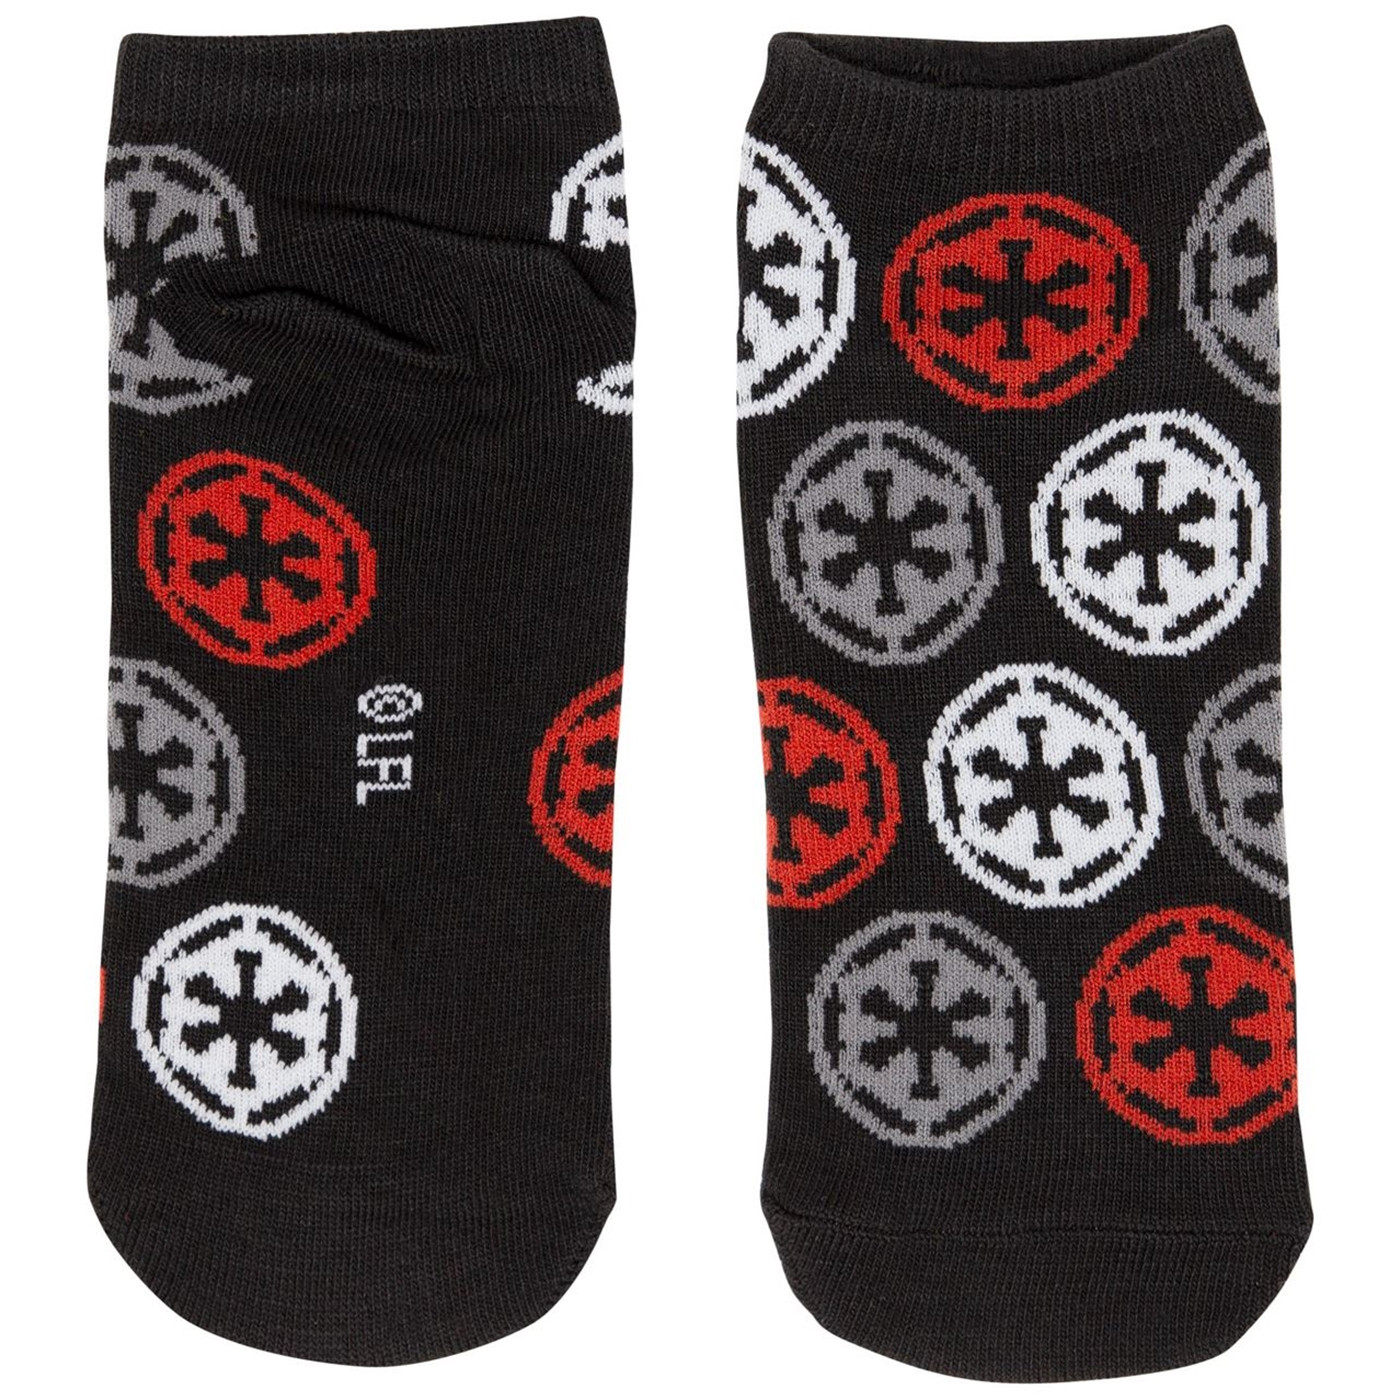 Star Wars Rebels Shorty 5-Pack Socks